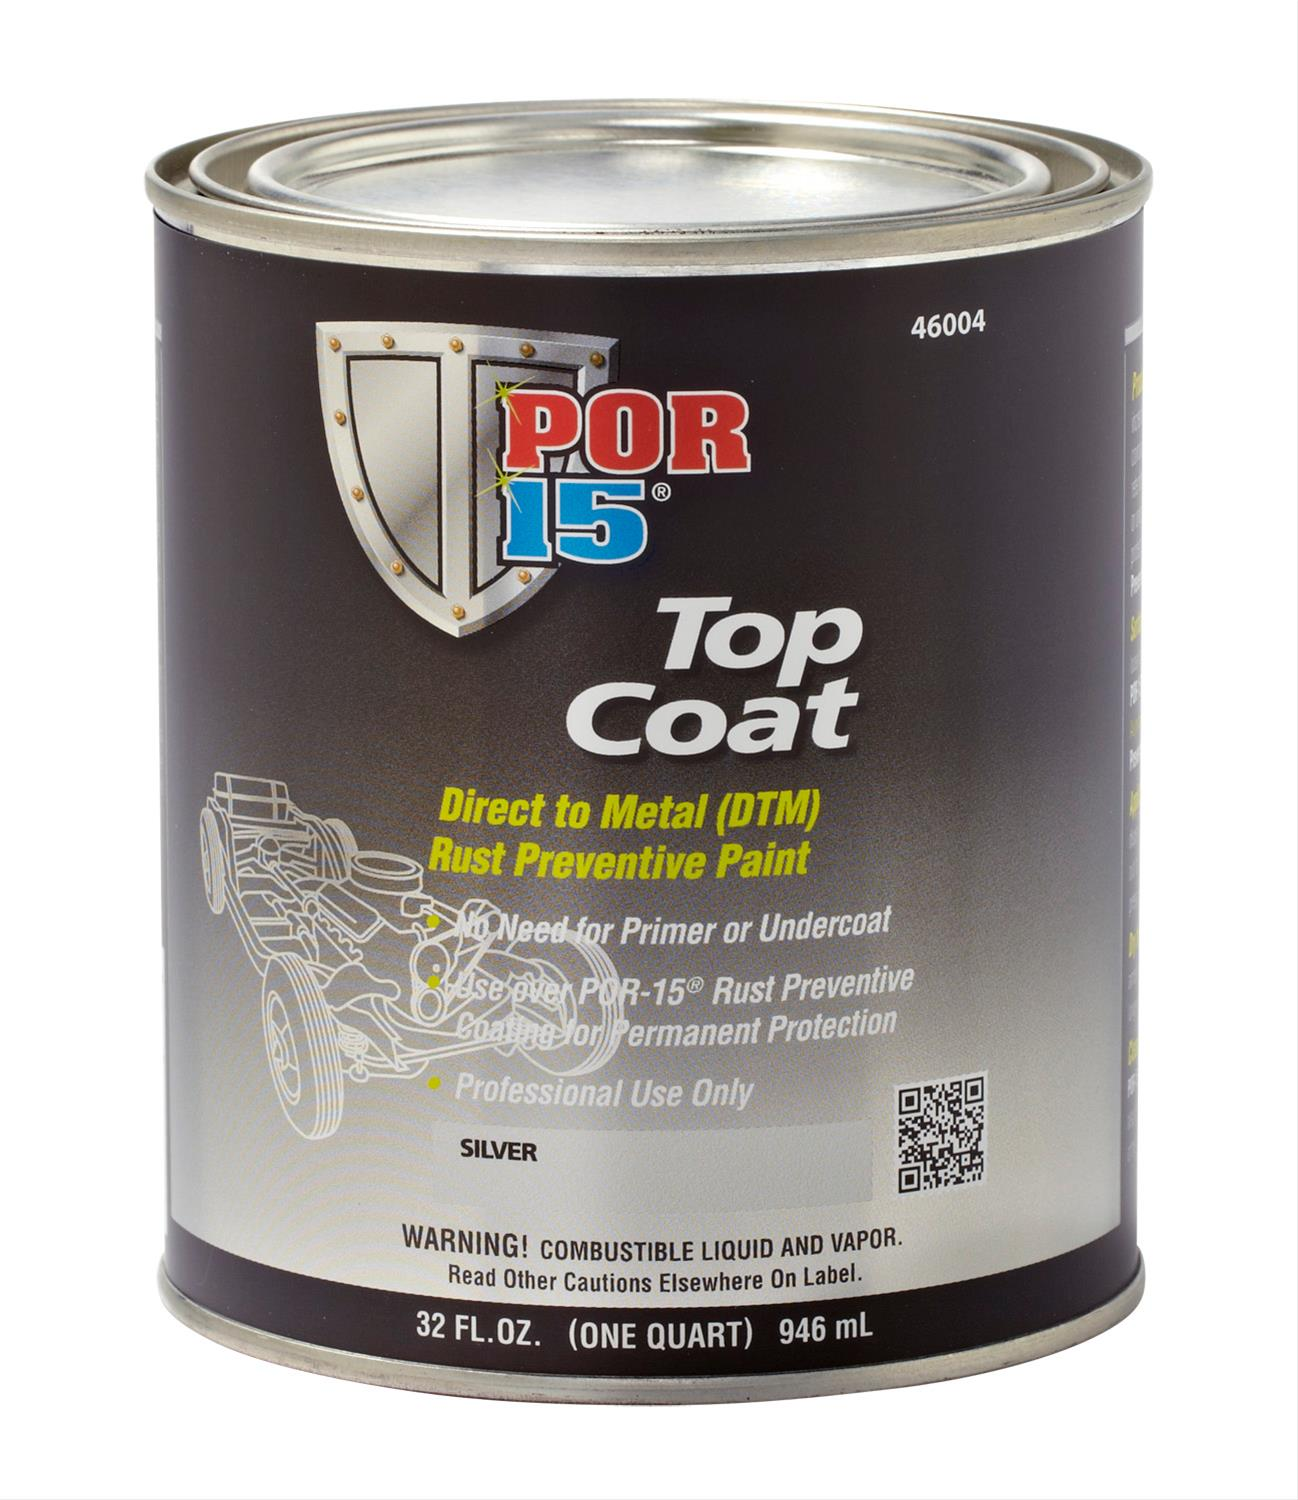 Top Coat Paint >> Por 15 Top Coat Paint 45901 Free Shipping On Orders Over 99 At